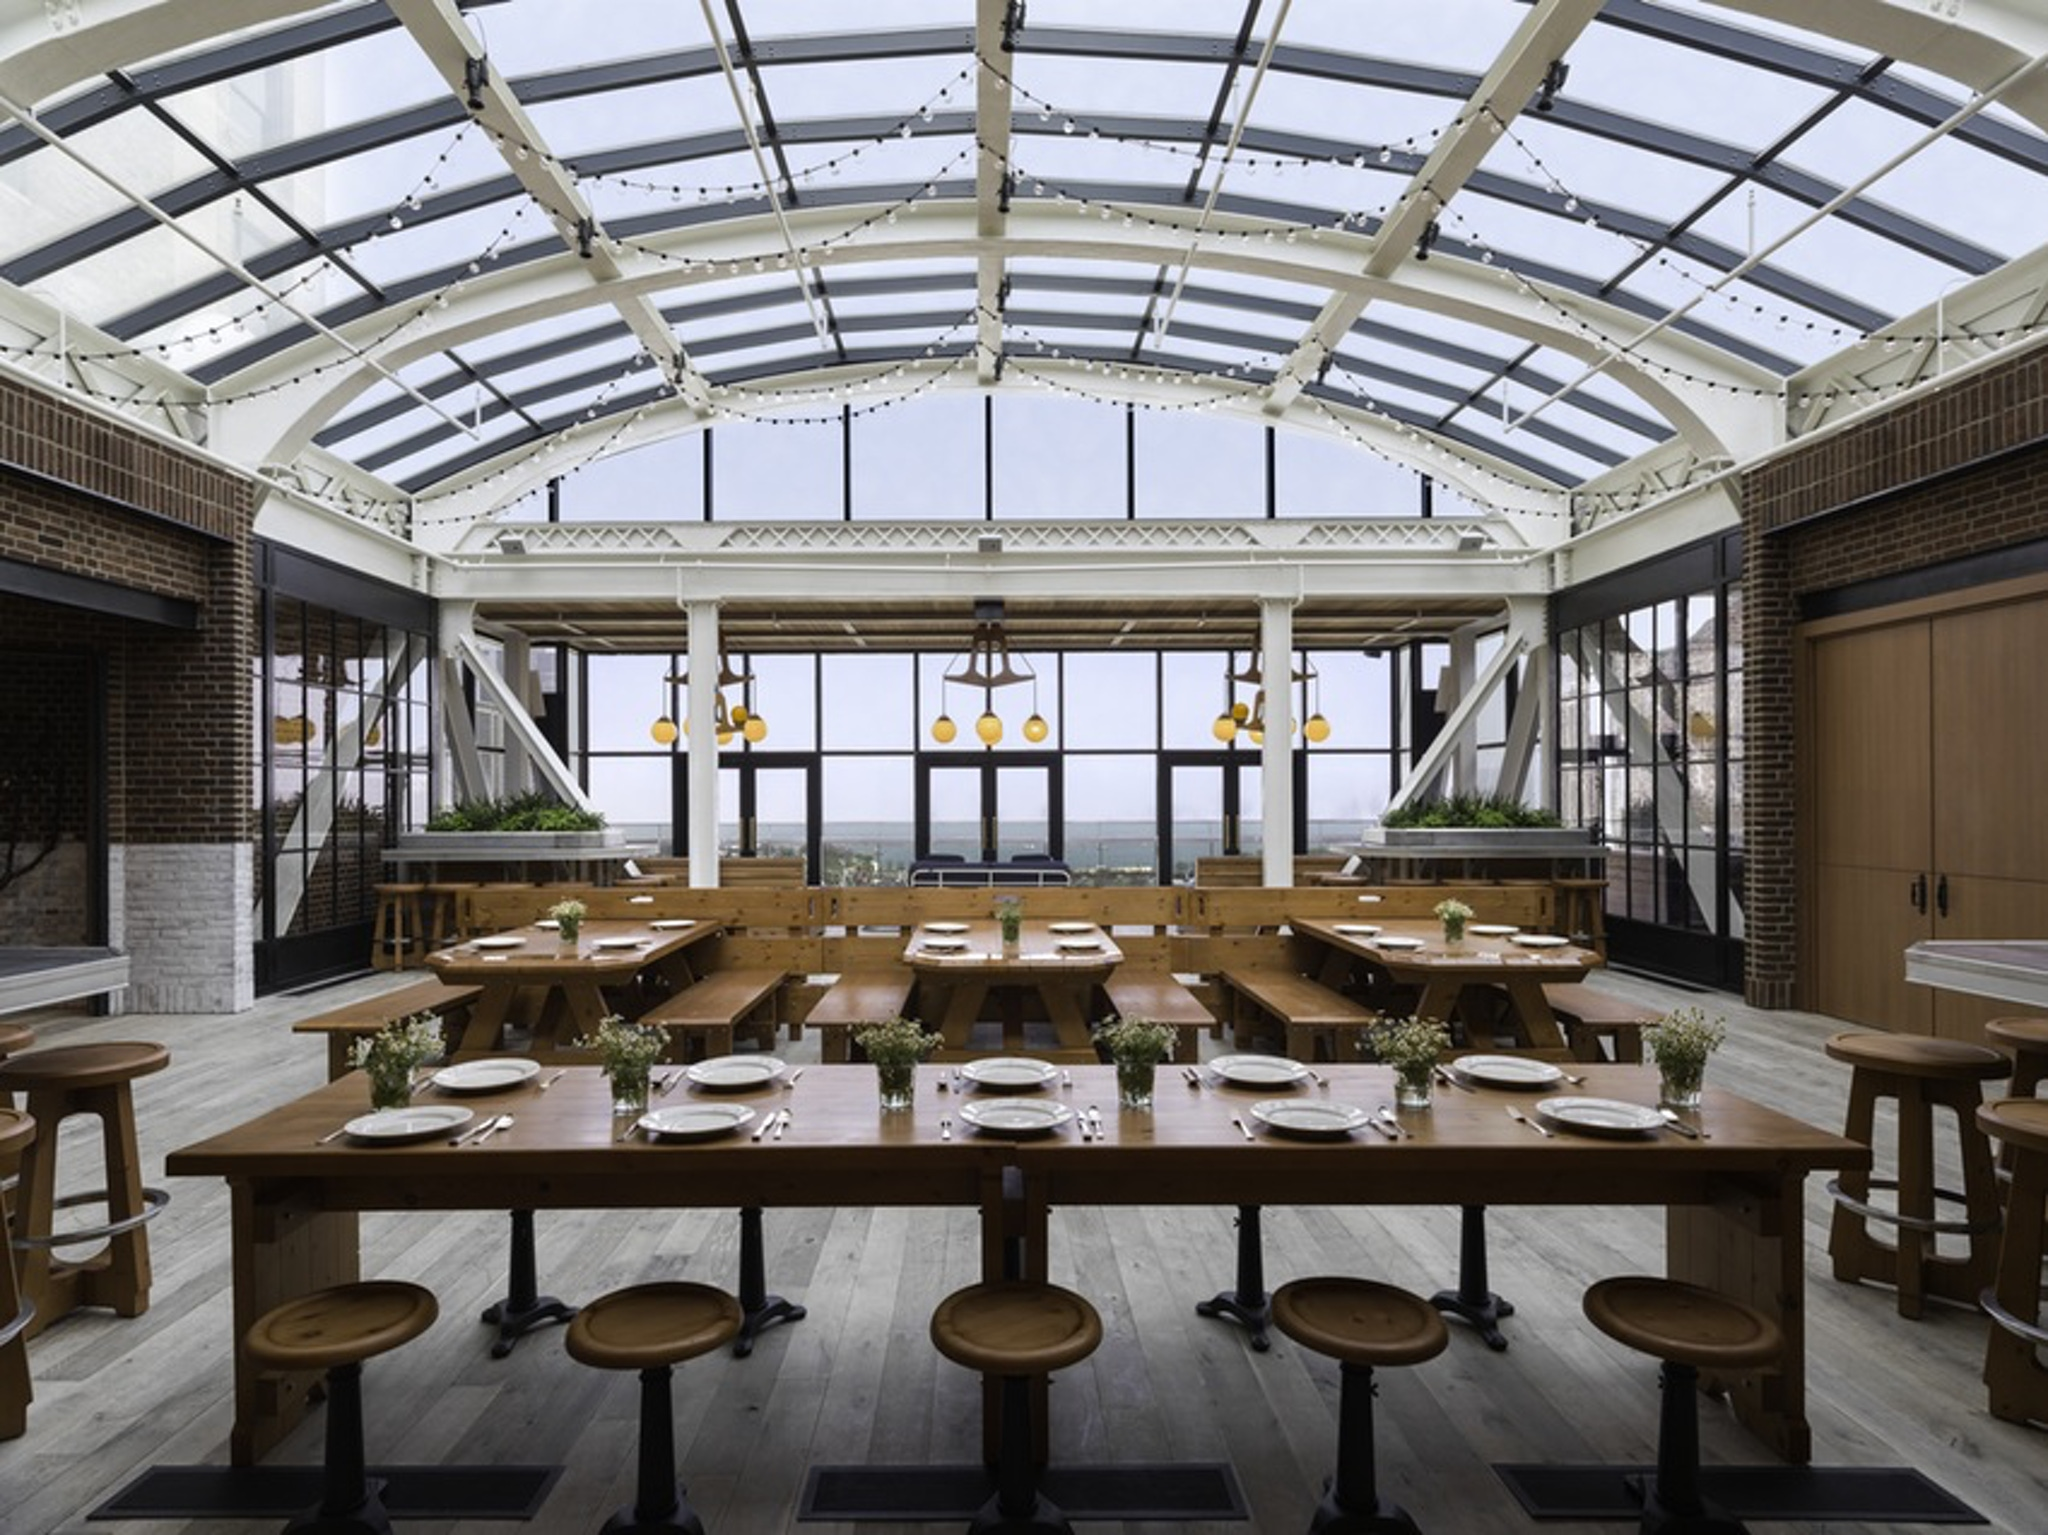 Chicago venues for a wedding rehearsal dinner - Cindy's Rooftop